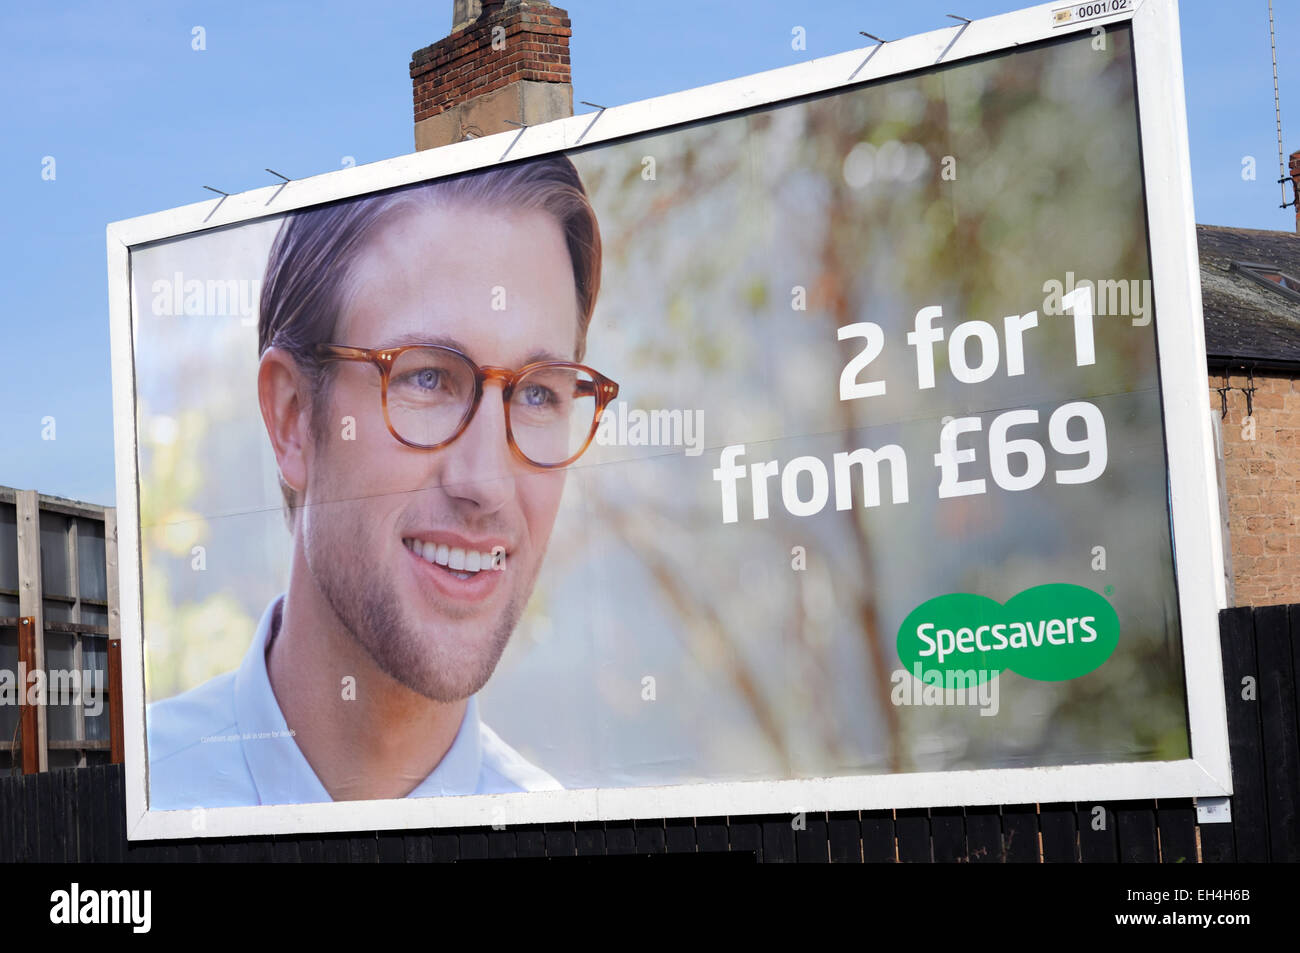 specsavers and advert stock photos specsavers and advert stock specsavers billboard advertisement mansfield nottinghamshire uk stock image